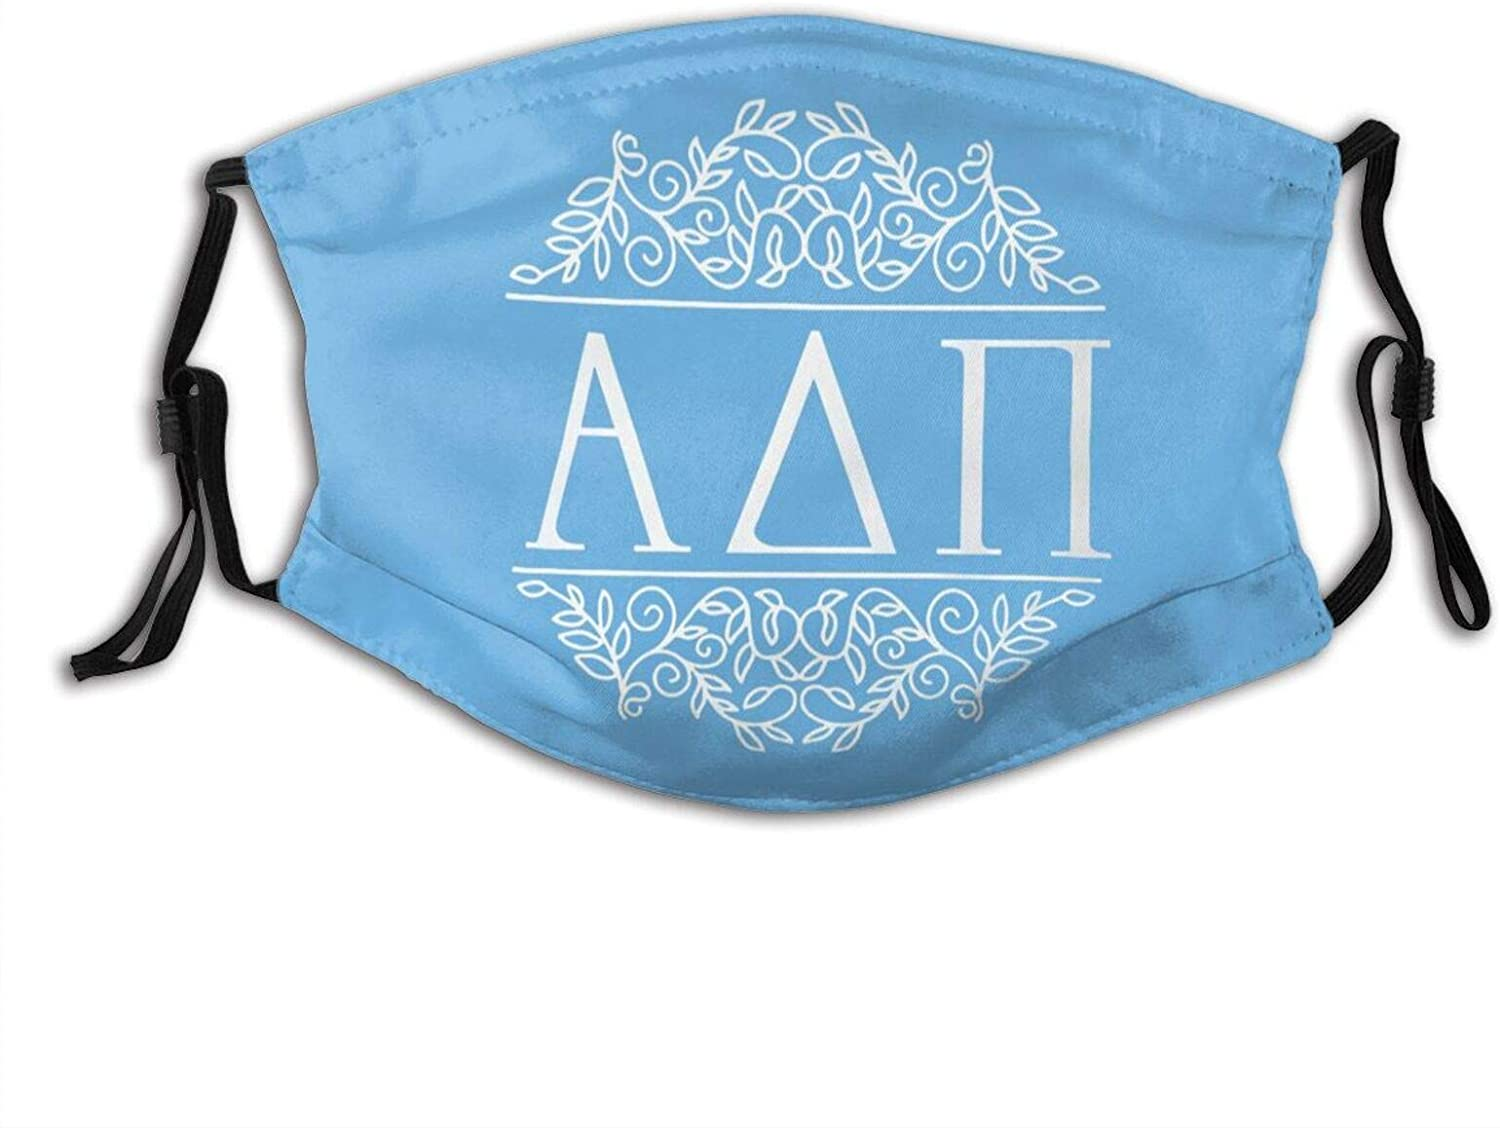 Pi Kappa Phi Outdoor Mask,Protective 5-Layer Activated Carbon Filters Adult Men Women Bandana